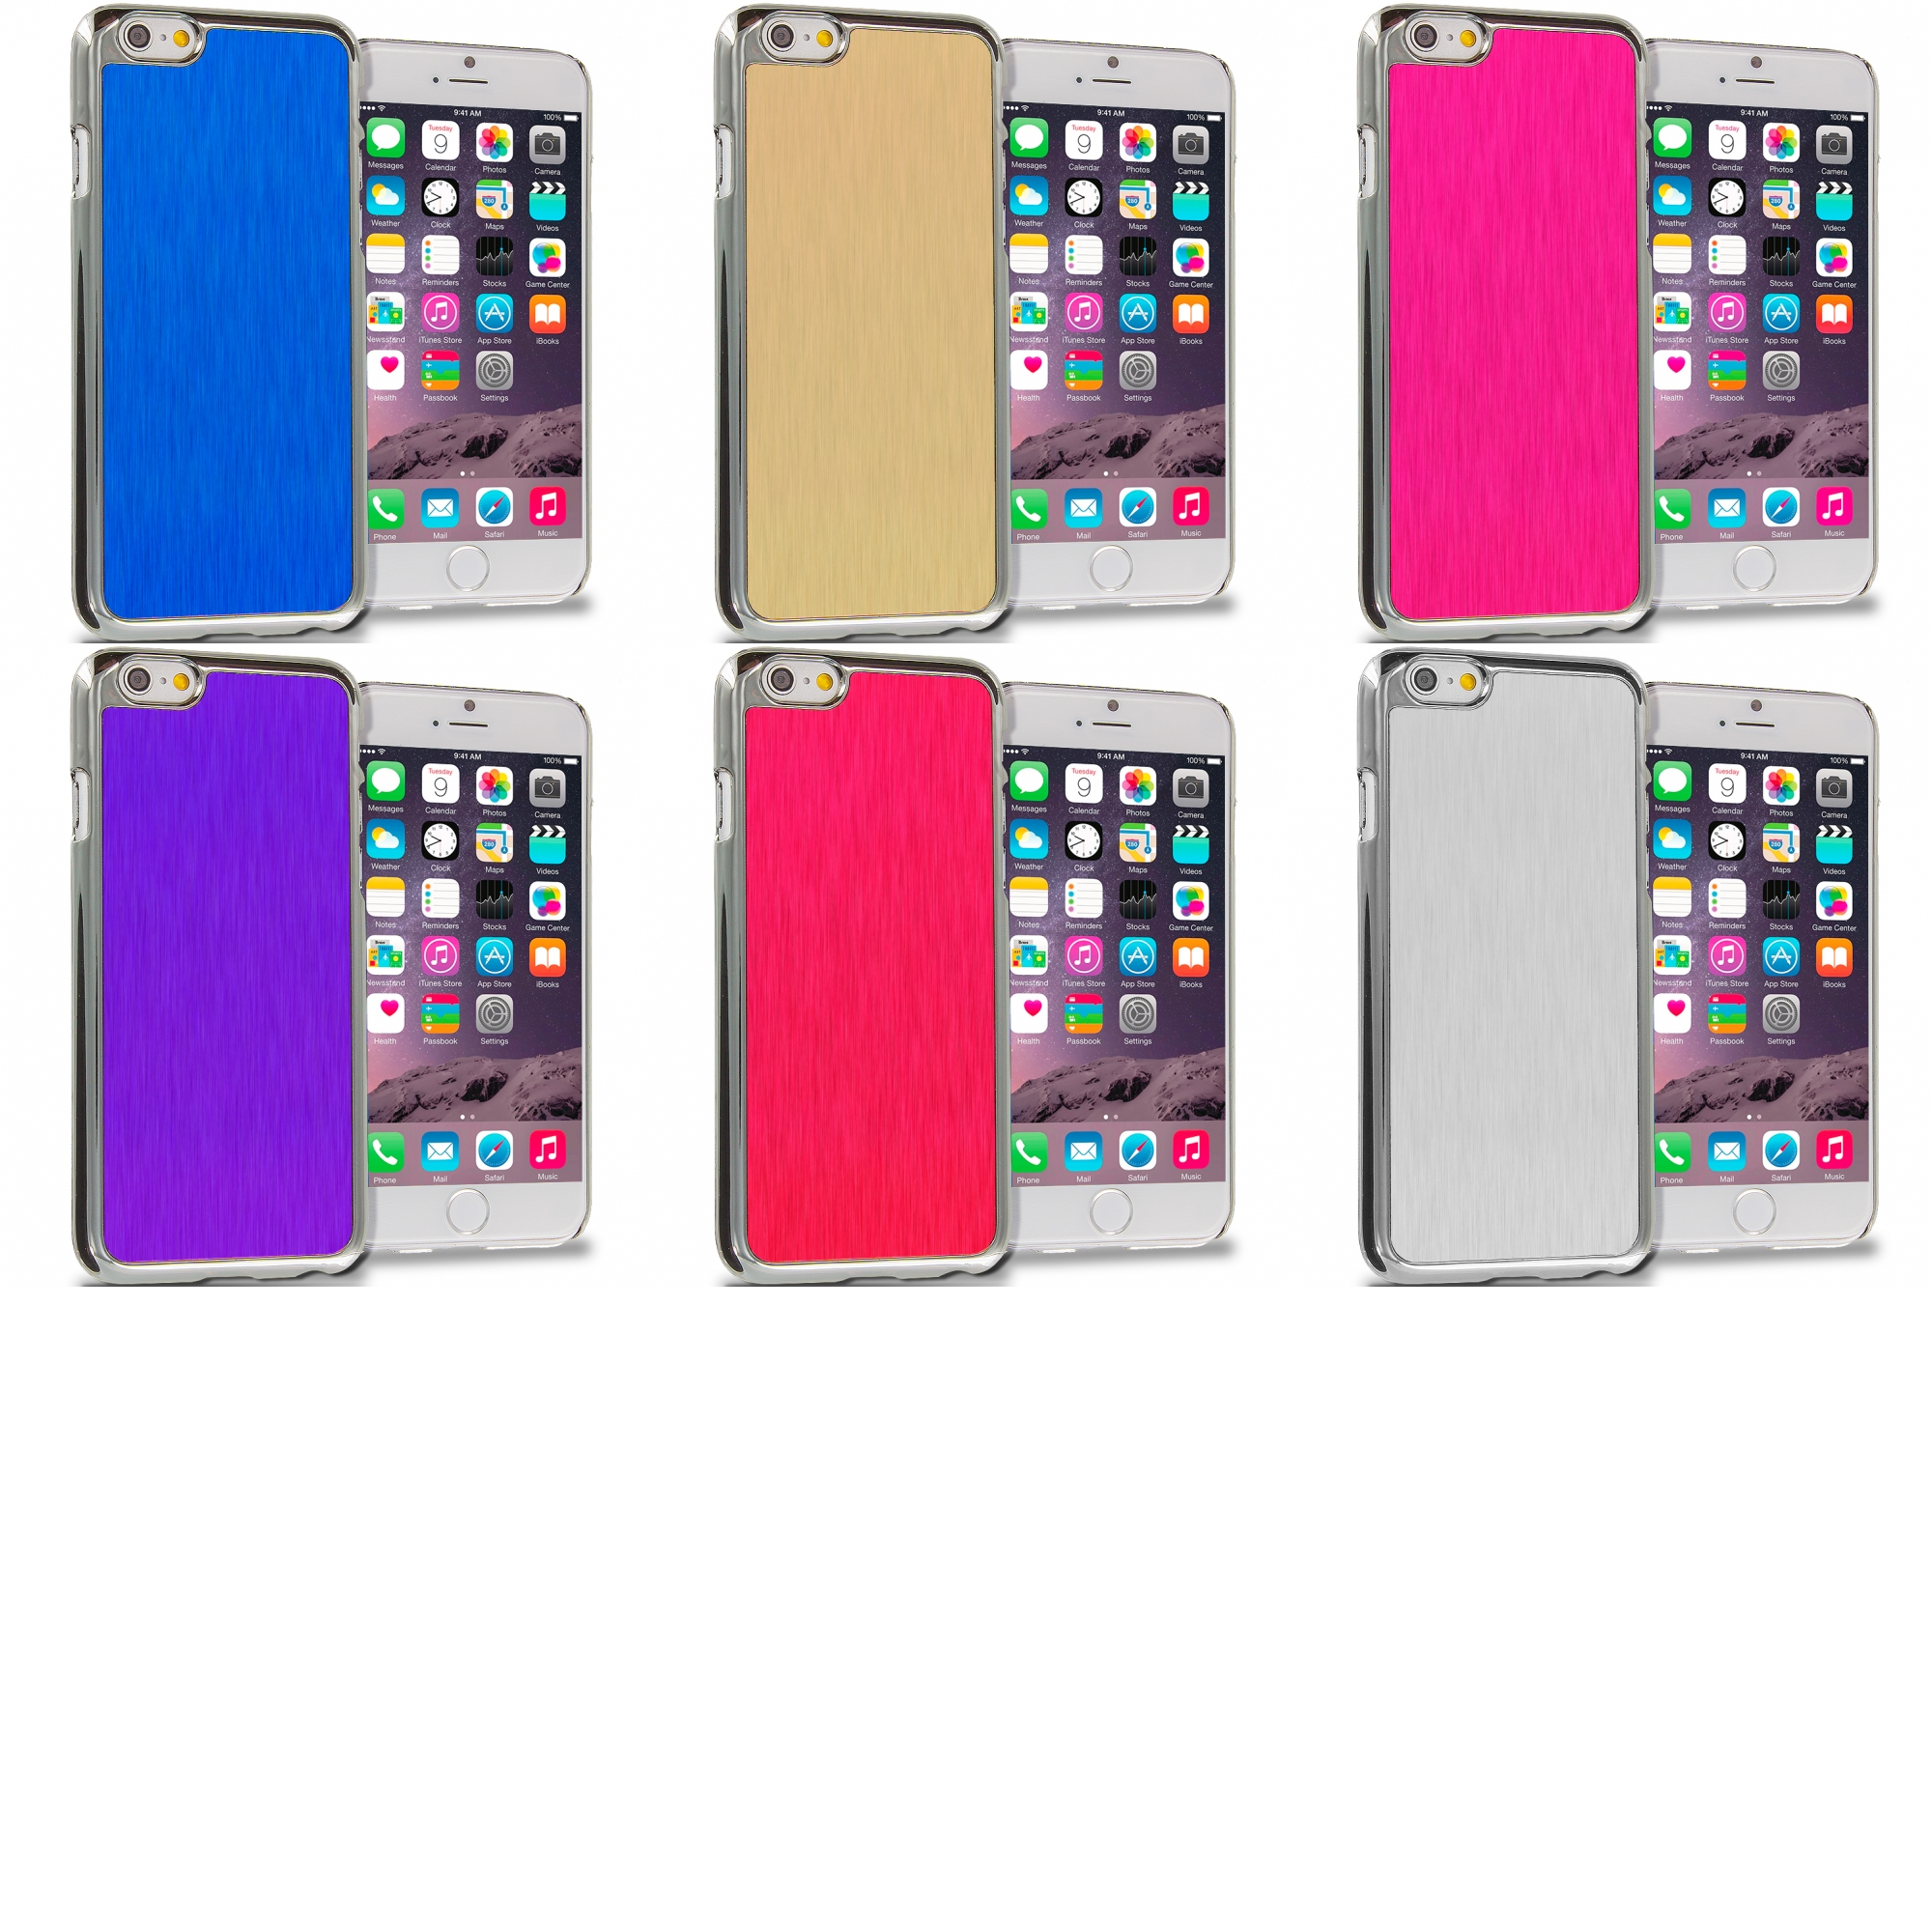 Apple iPhone 6 6S (4.7) 6 in 1 Combo Bundle Pack - Aluminum Metal Hard Case Cover